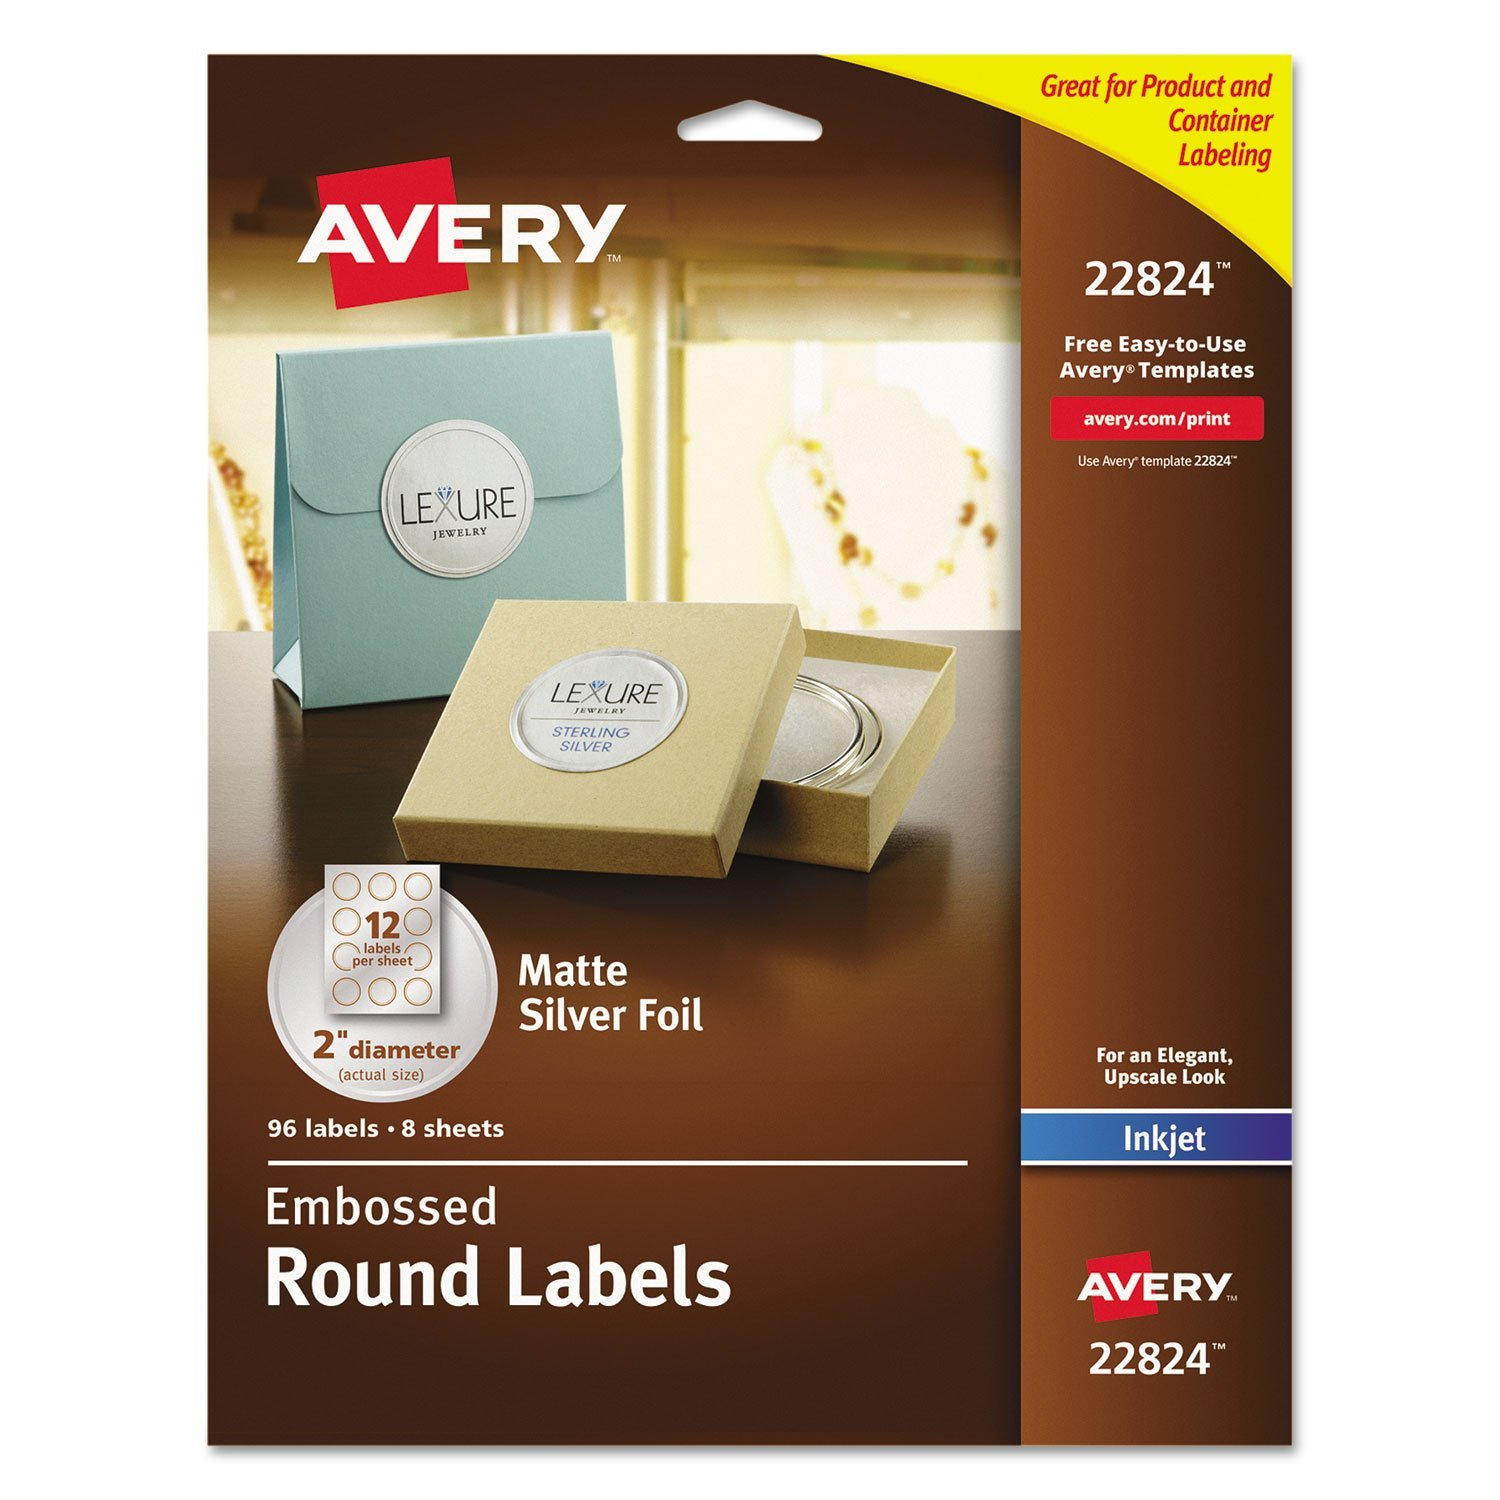 Avery Round Labels, 2 inch dia, Silver Foil, 96/Pack